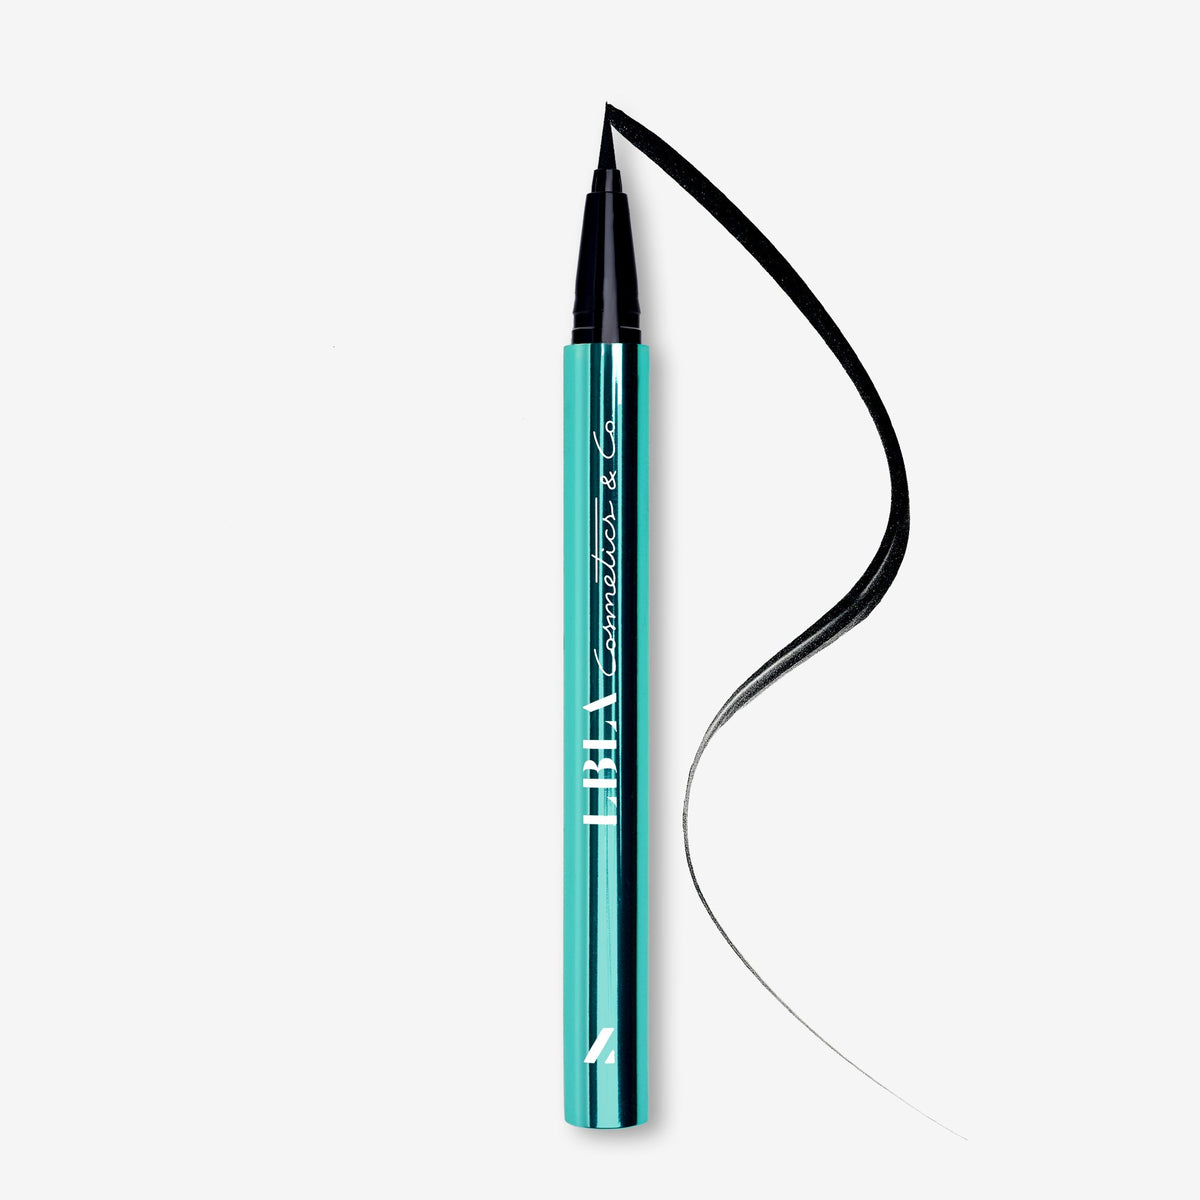 LBLA COSMETICS & CO. EVERLASTING EYELINER Lash Extension safe liquid eyeliner